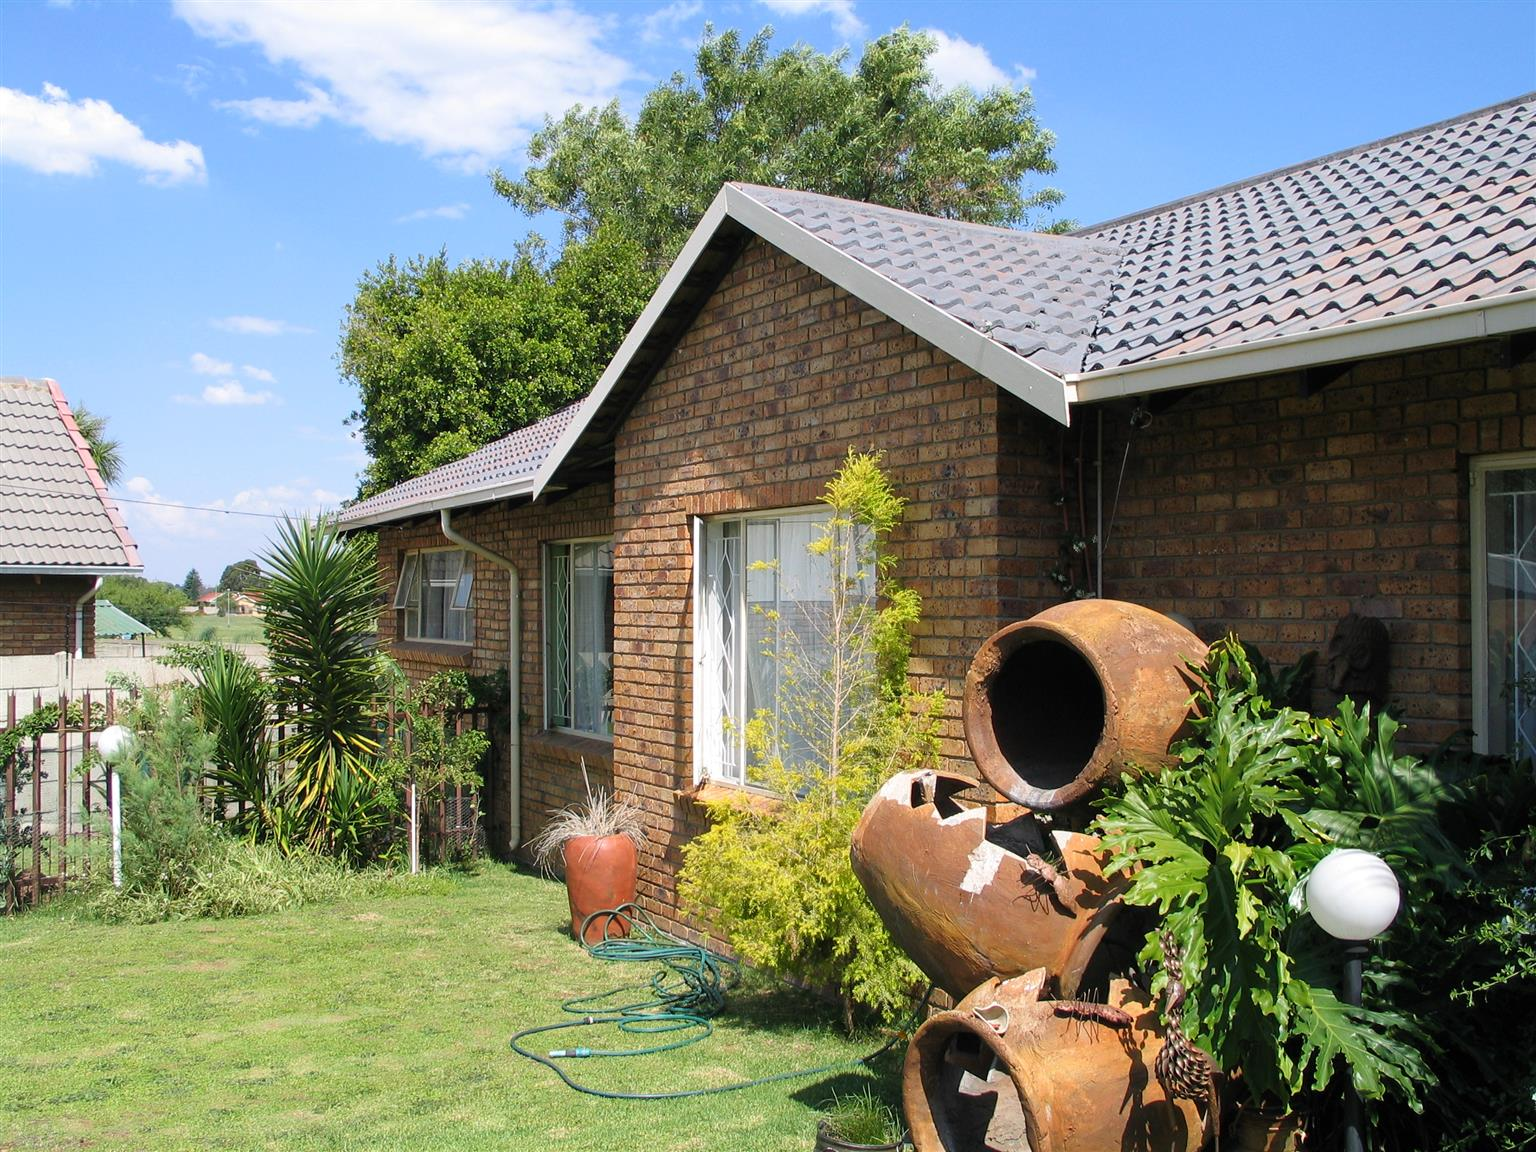 Impalapark lake view house!!!13beds+double garden+huge lapa+solar geyser+pre-power